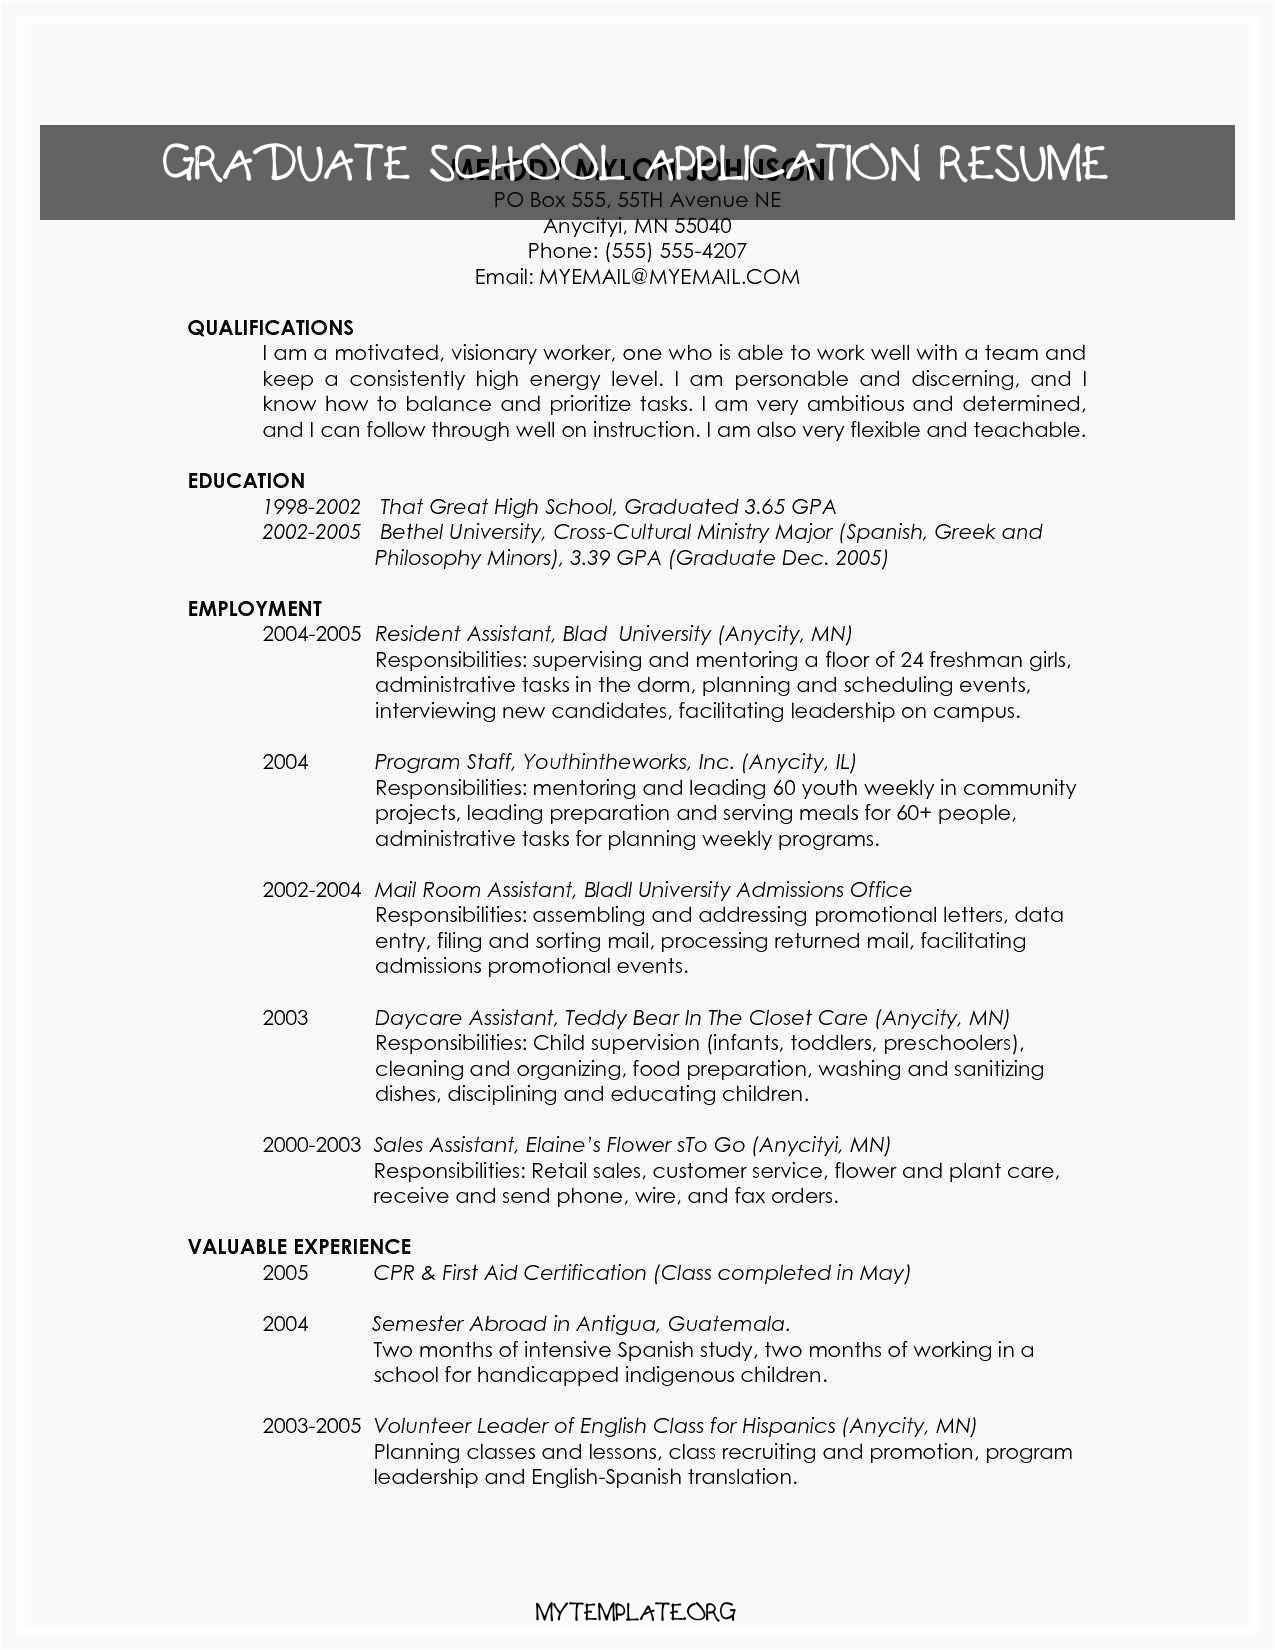 graduate school application resume of resume for masters